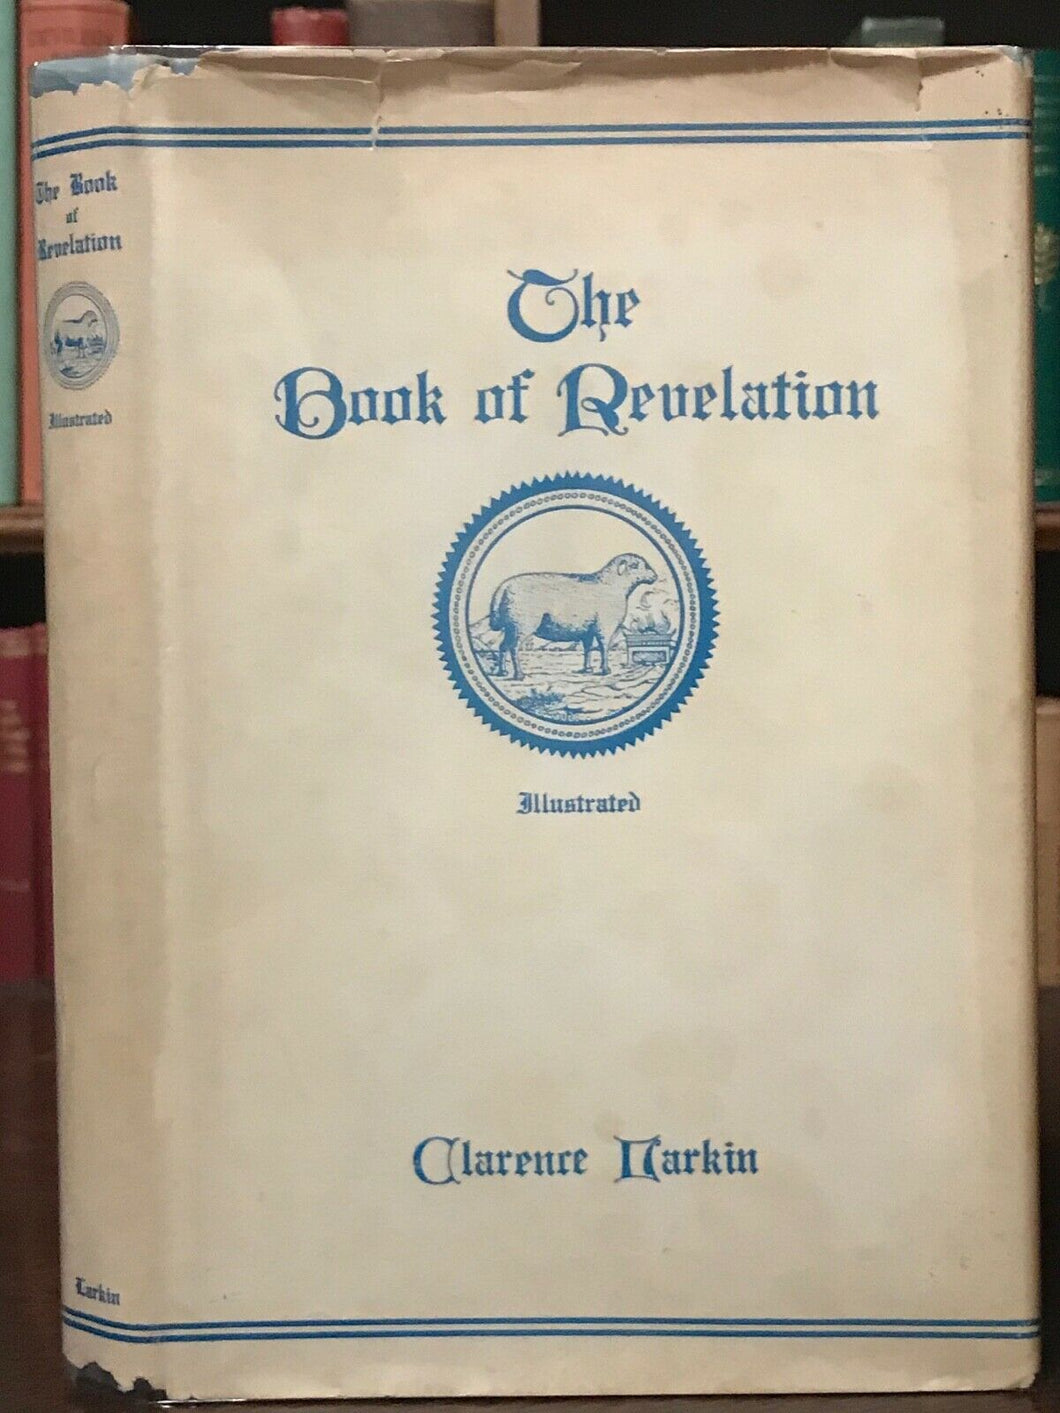 THE BOOK OF REVELATION - Larkin - PROPHECY BIBLE PROPHETIC END OF DAYS SCRIPTURE